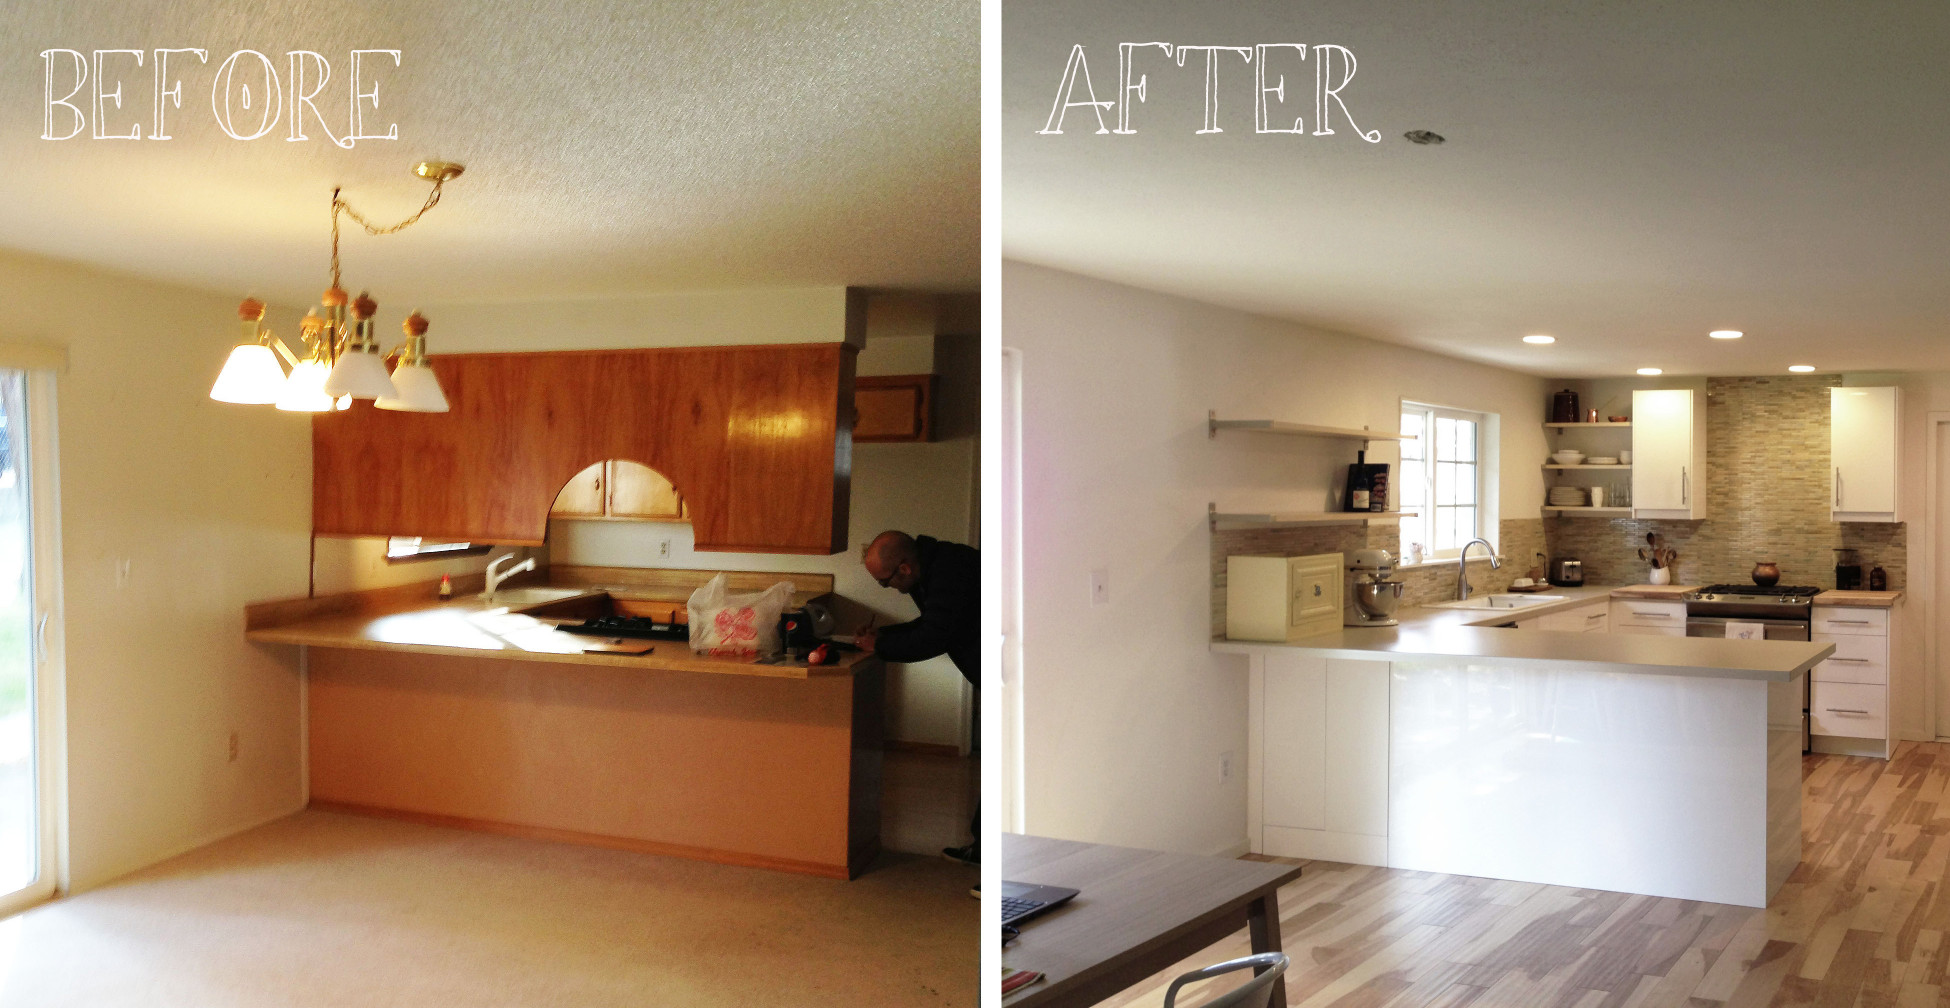 Small Kitchen Remodel Before And After  Small Kitchen Remodel Before and After for Stunning and